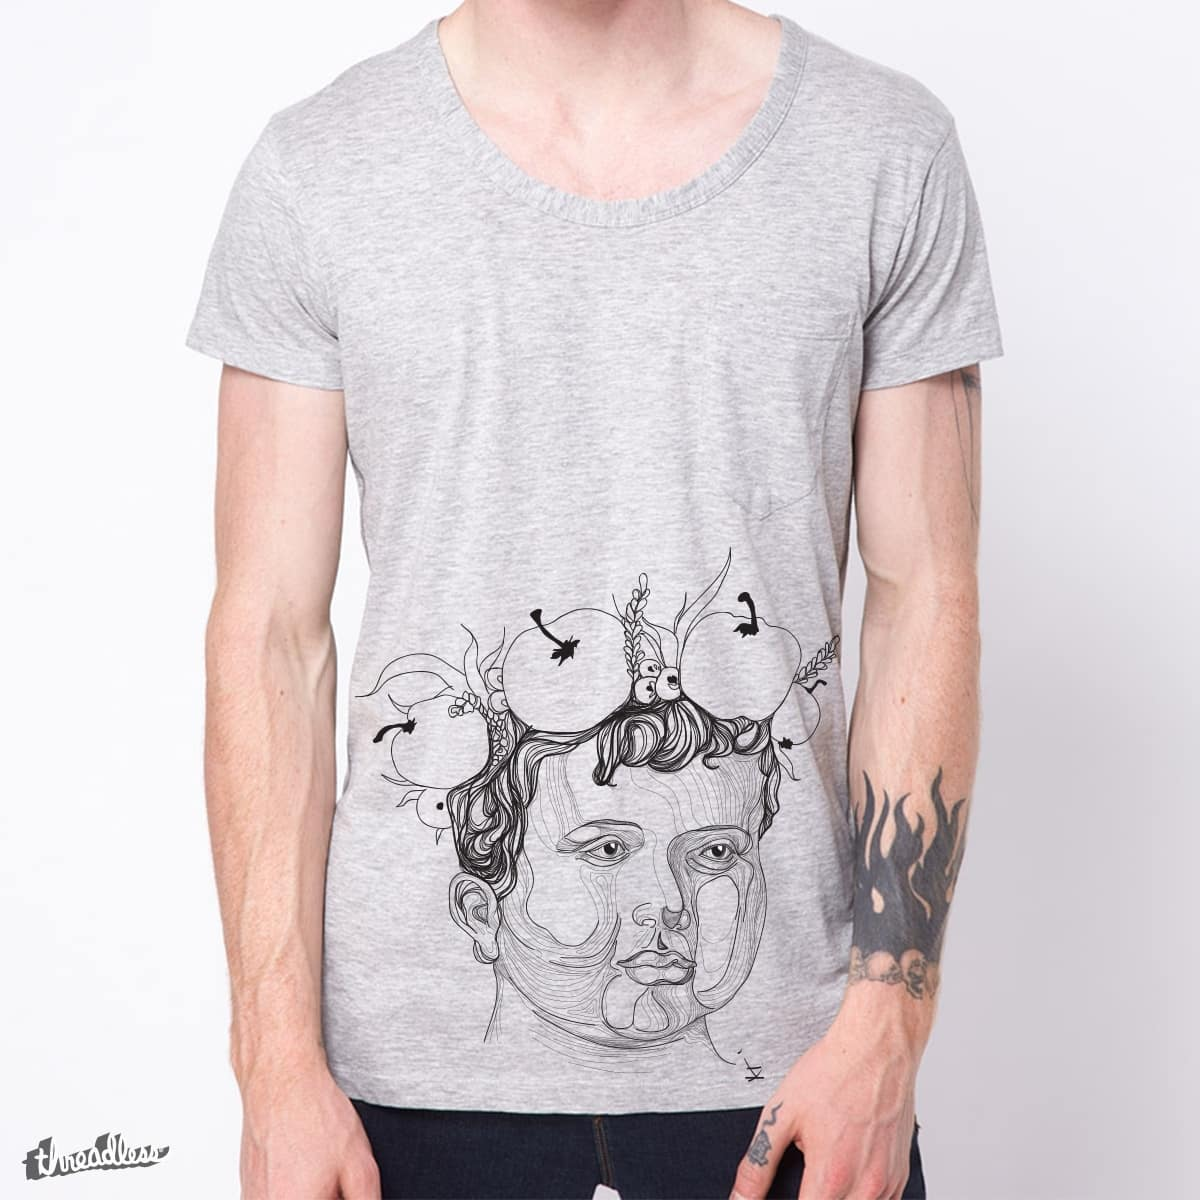 GREY by shkorolov on Threadless